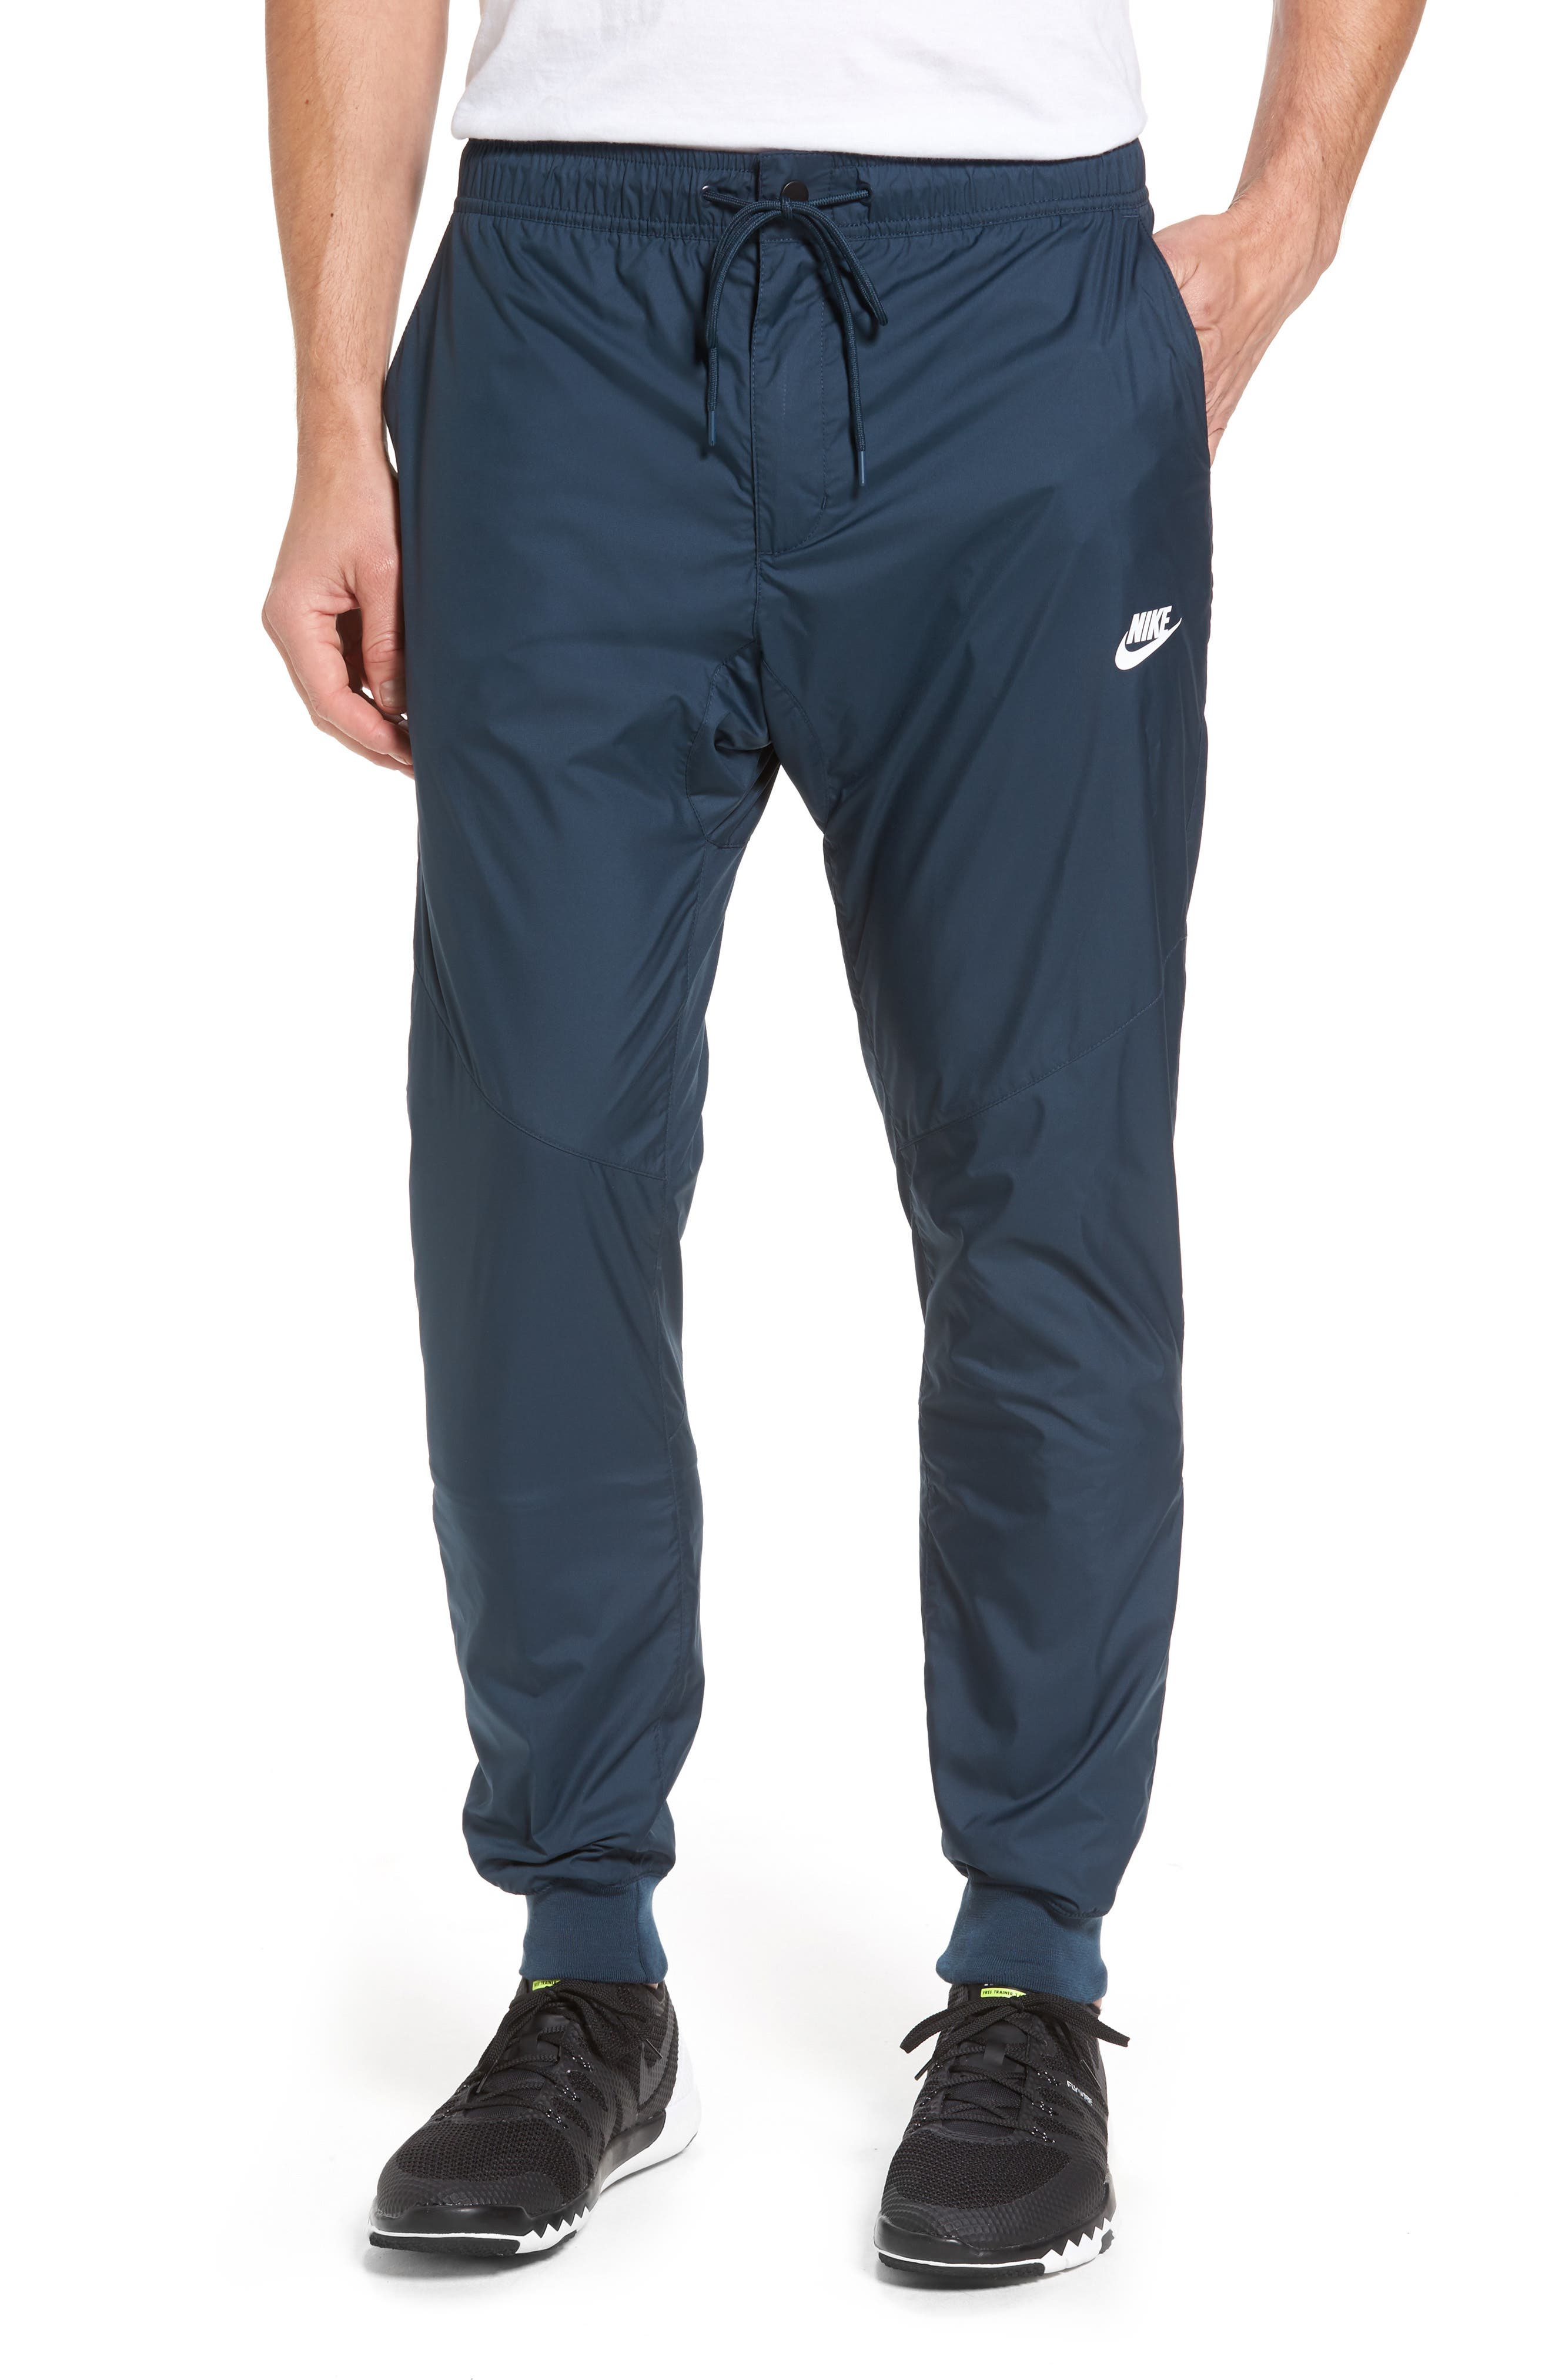 Windrunner Training Pants,                         Main,                         color, Armory Navy/ White